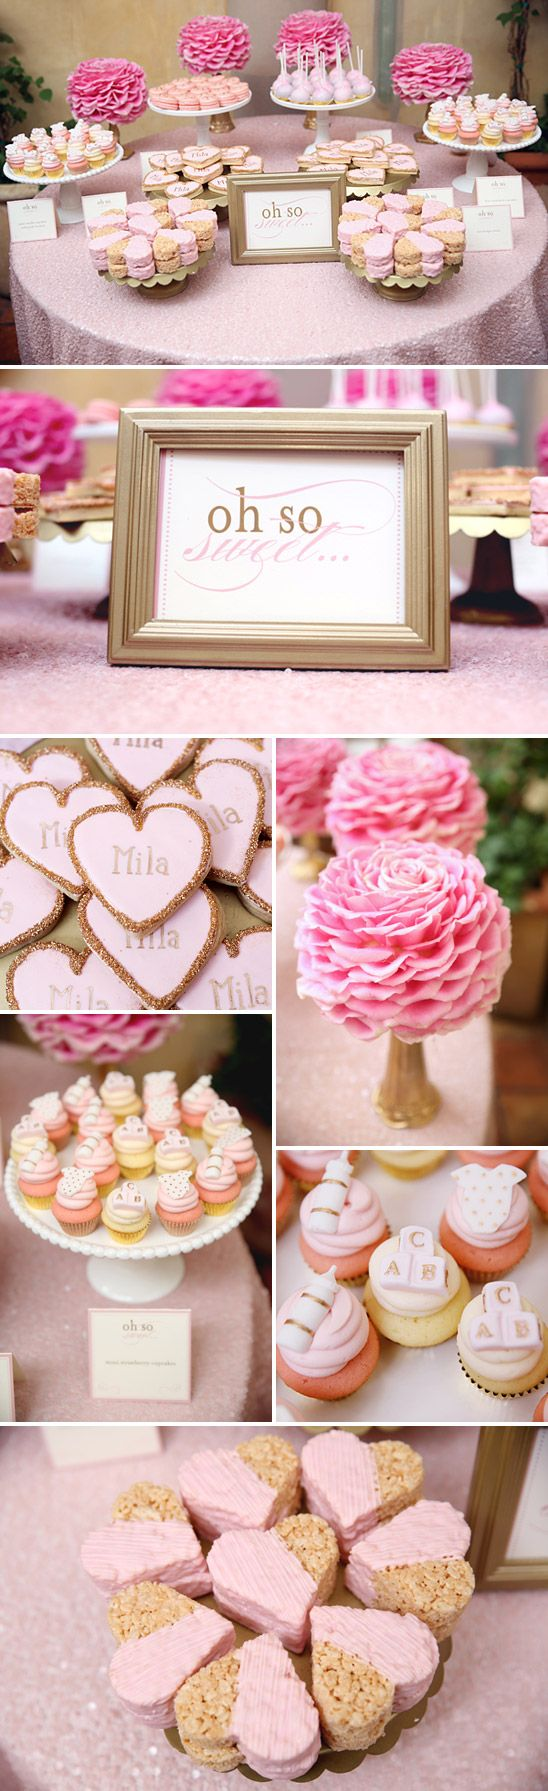 a feminine elegant baby shower in pink and gold dessert tables